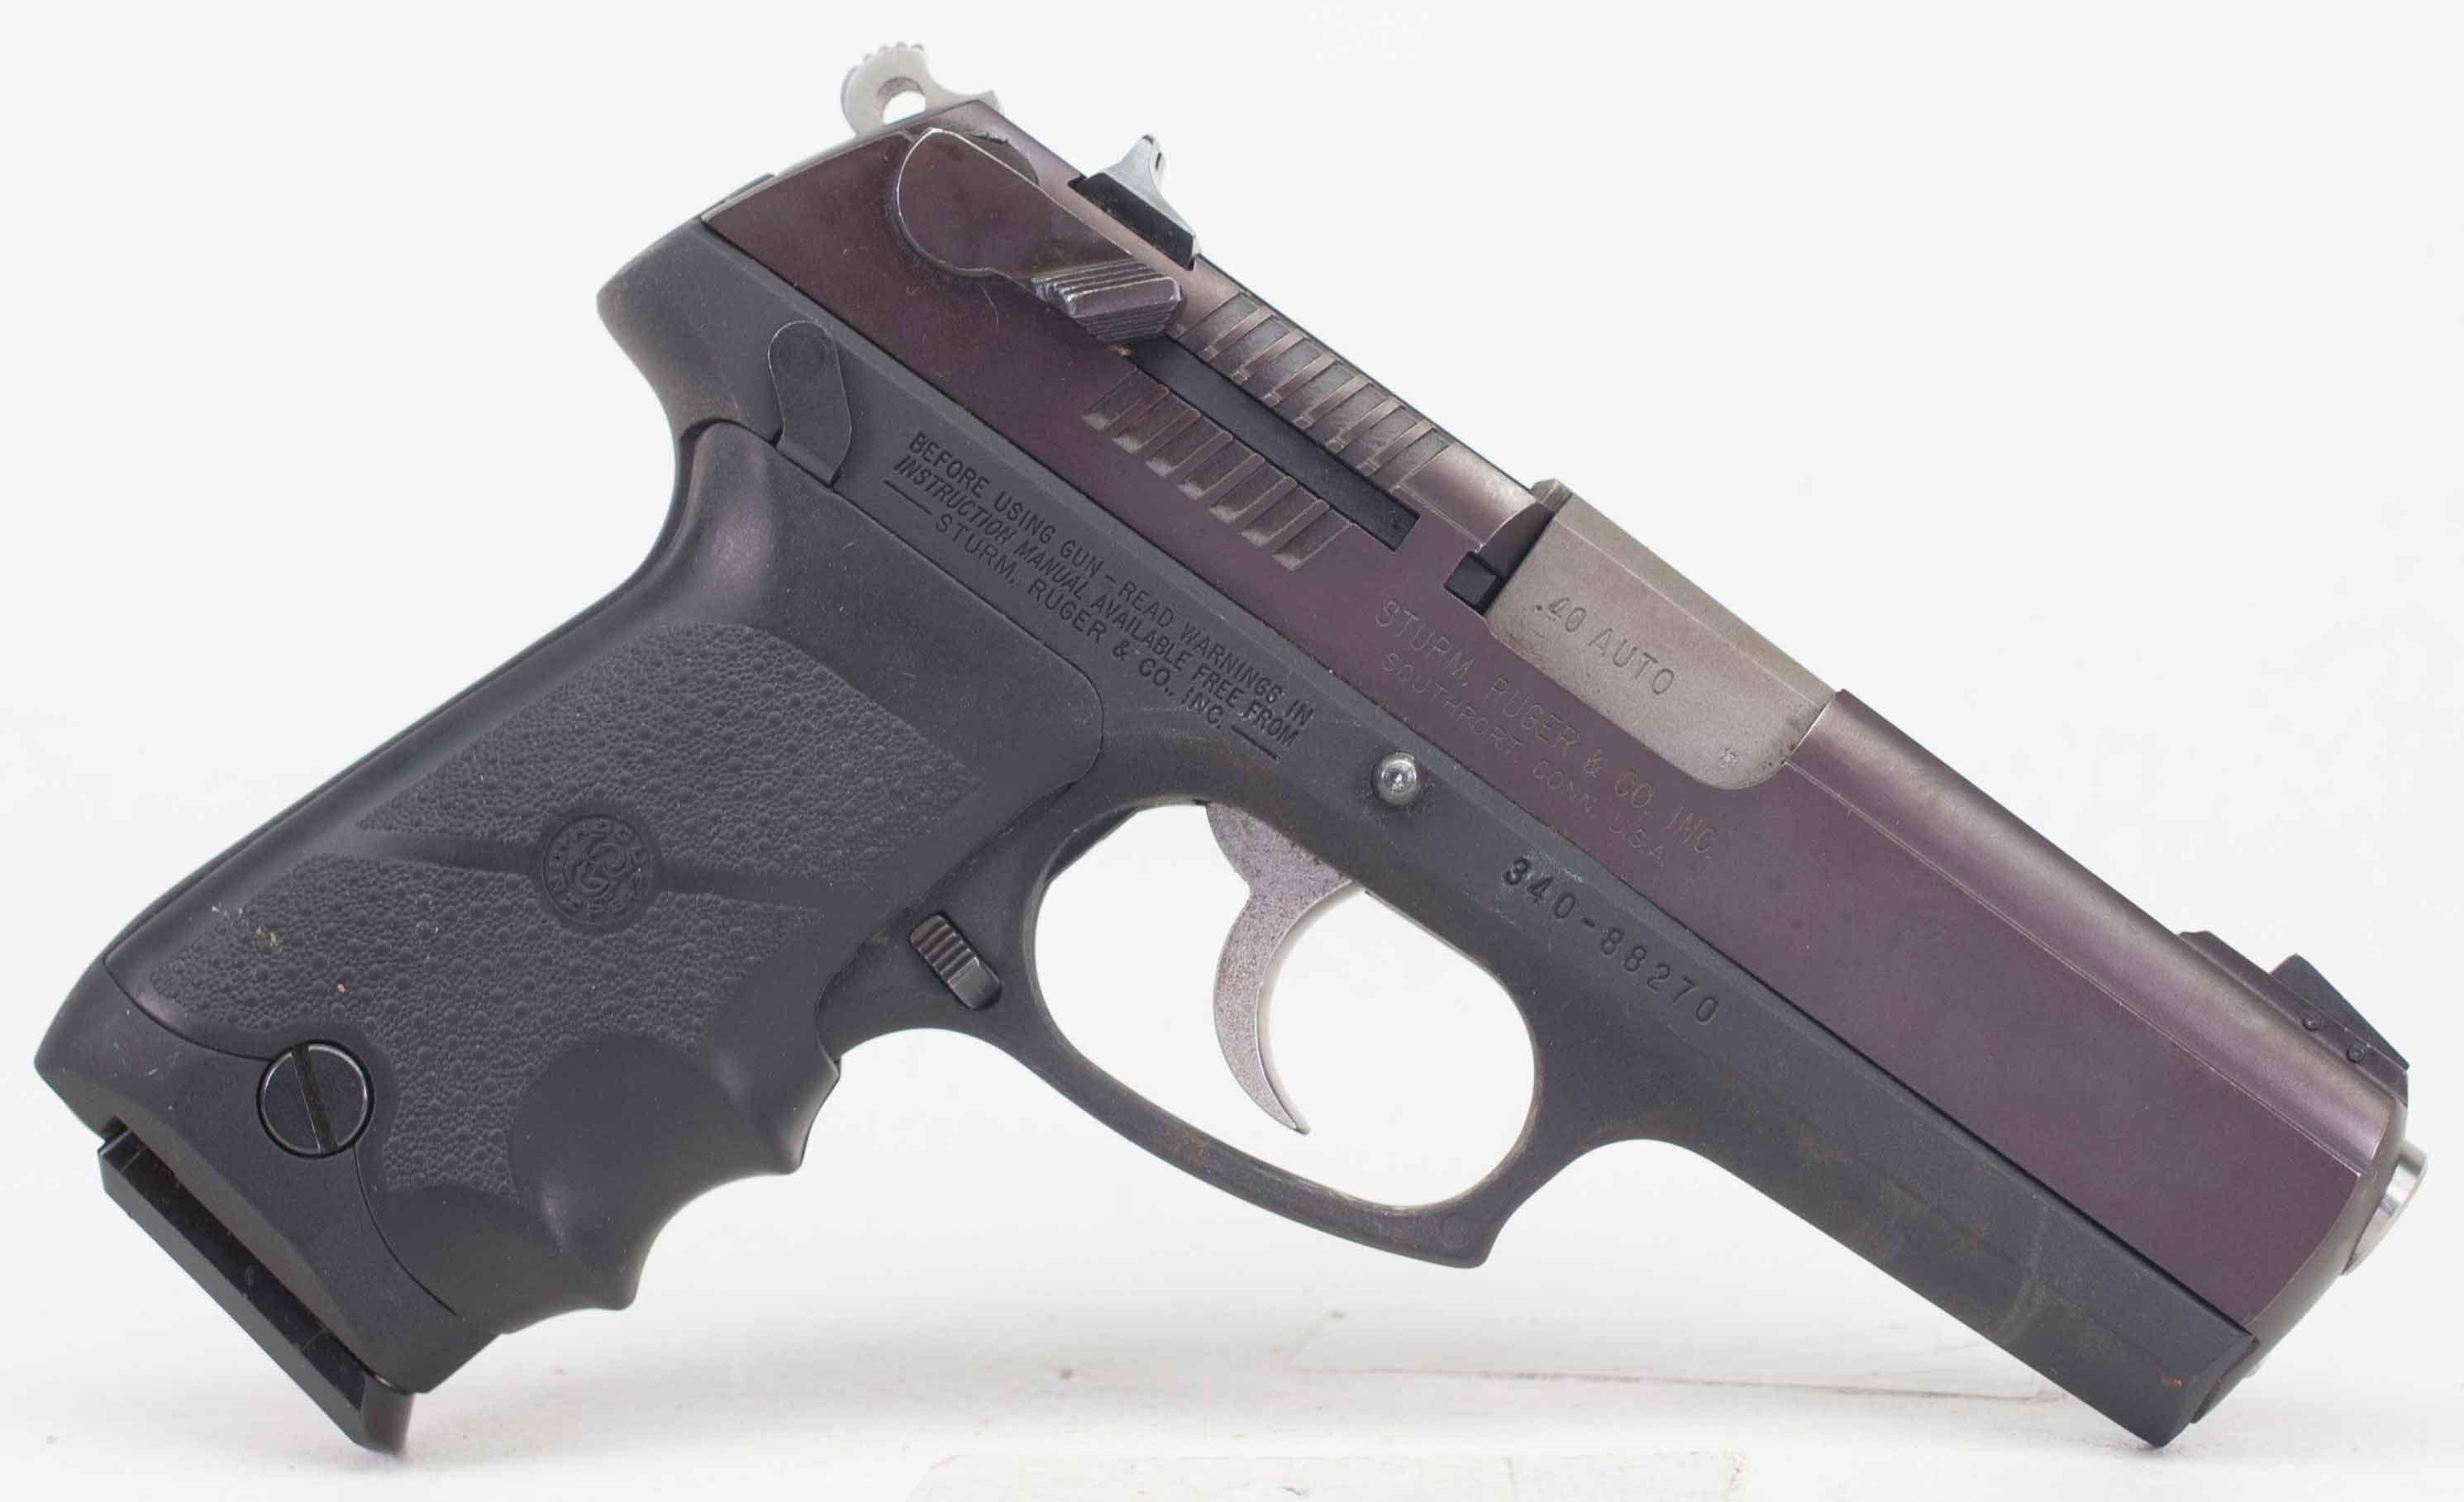 ruger p94 40sw auction id 11984439 end time jul 11 2018 21 05 rh egunner com Ruger P90 ruger p94 owners manual